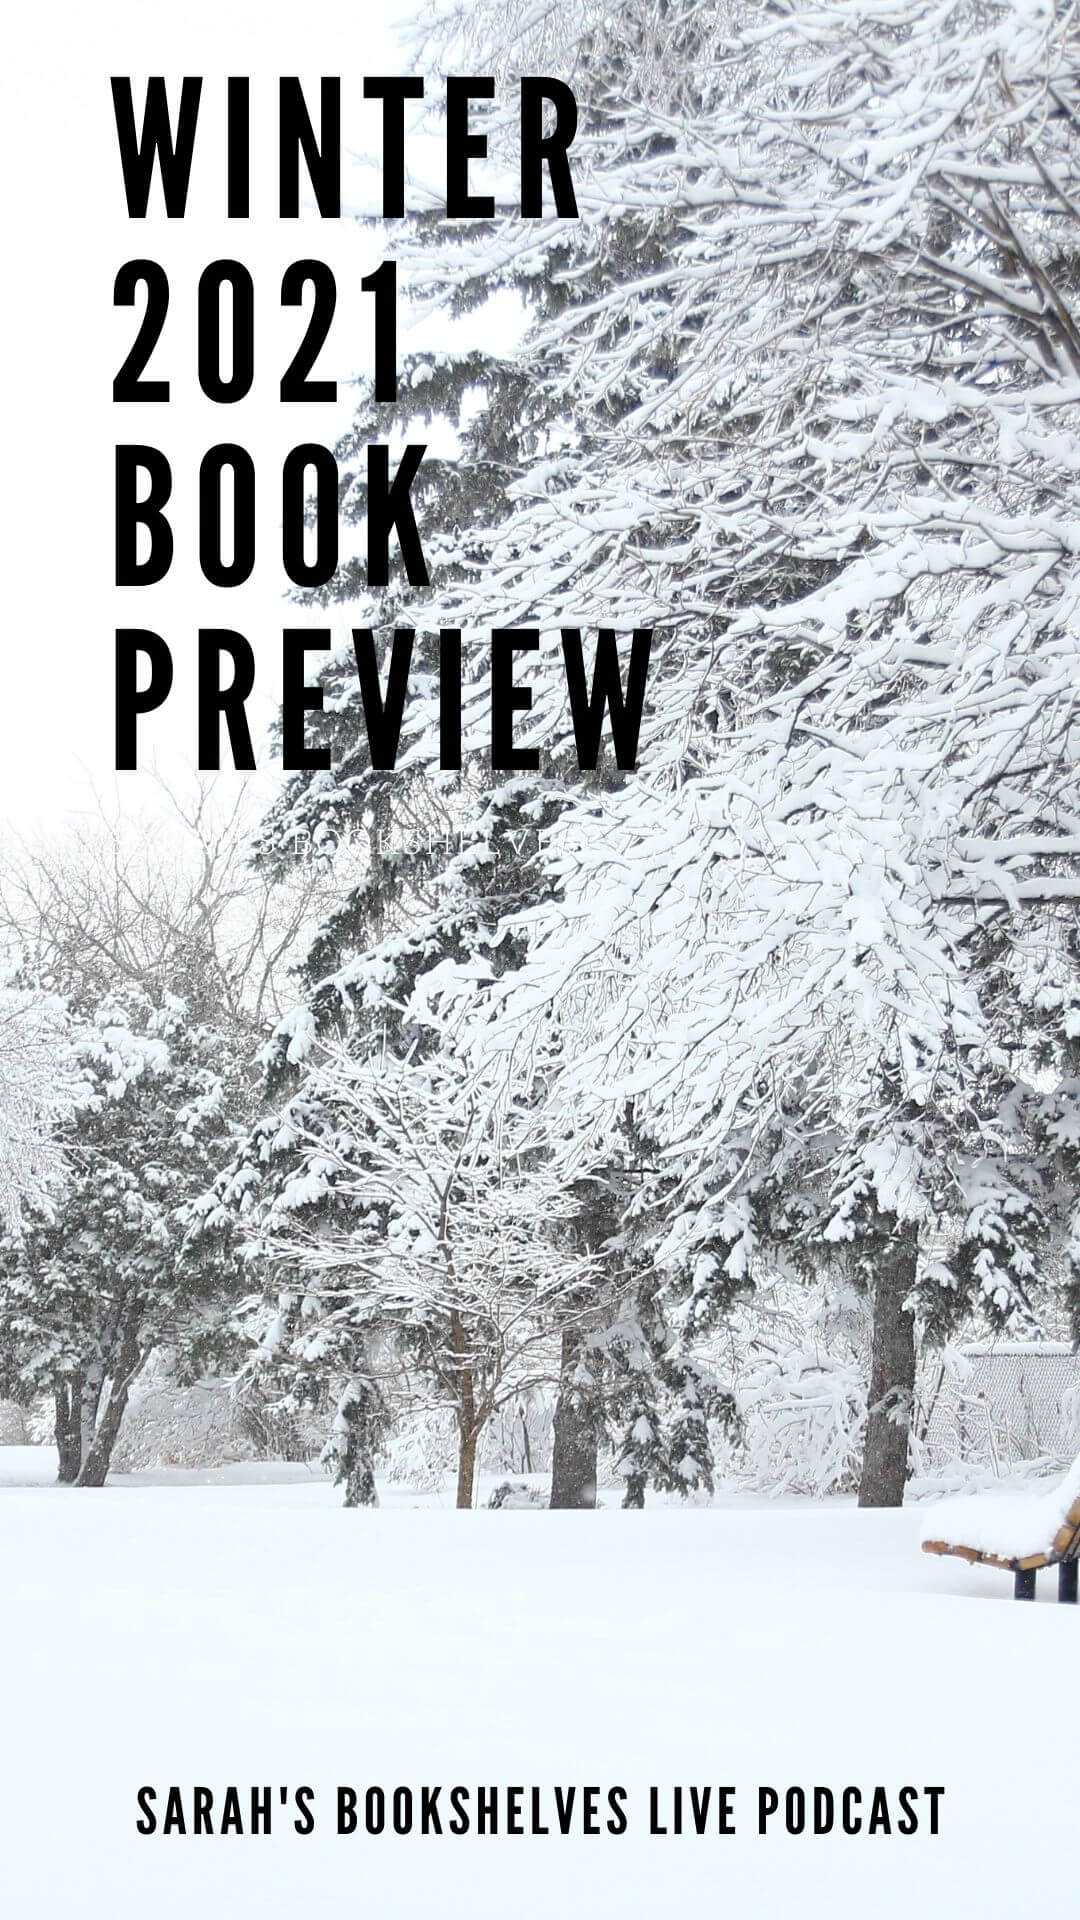 Winter 2021 Book Preview